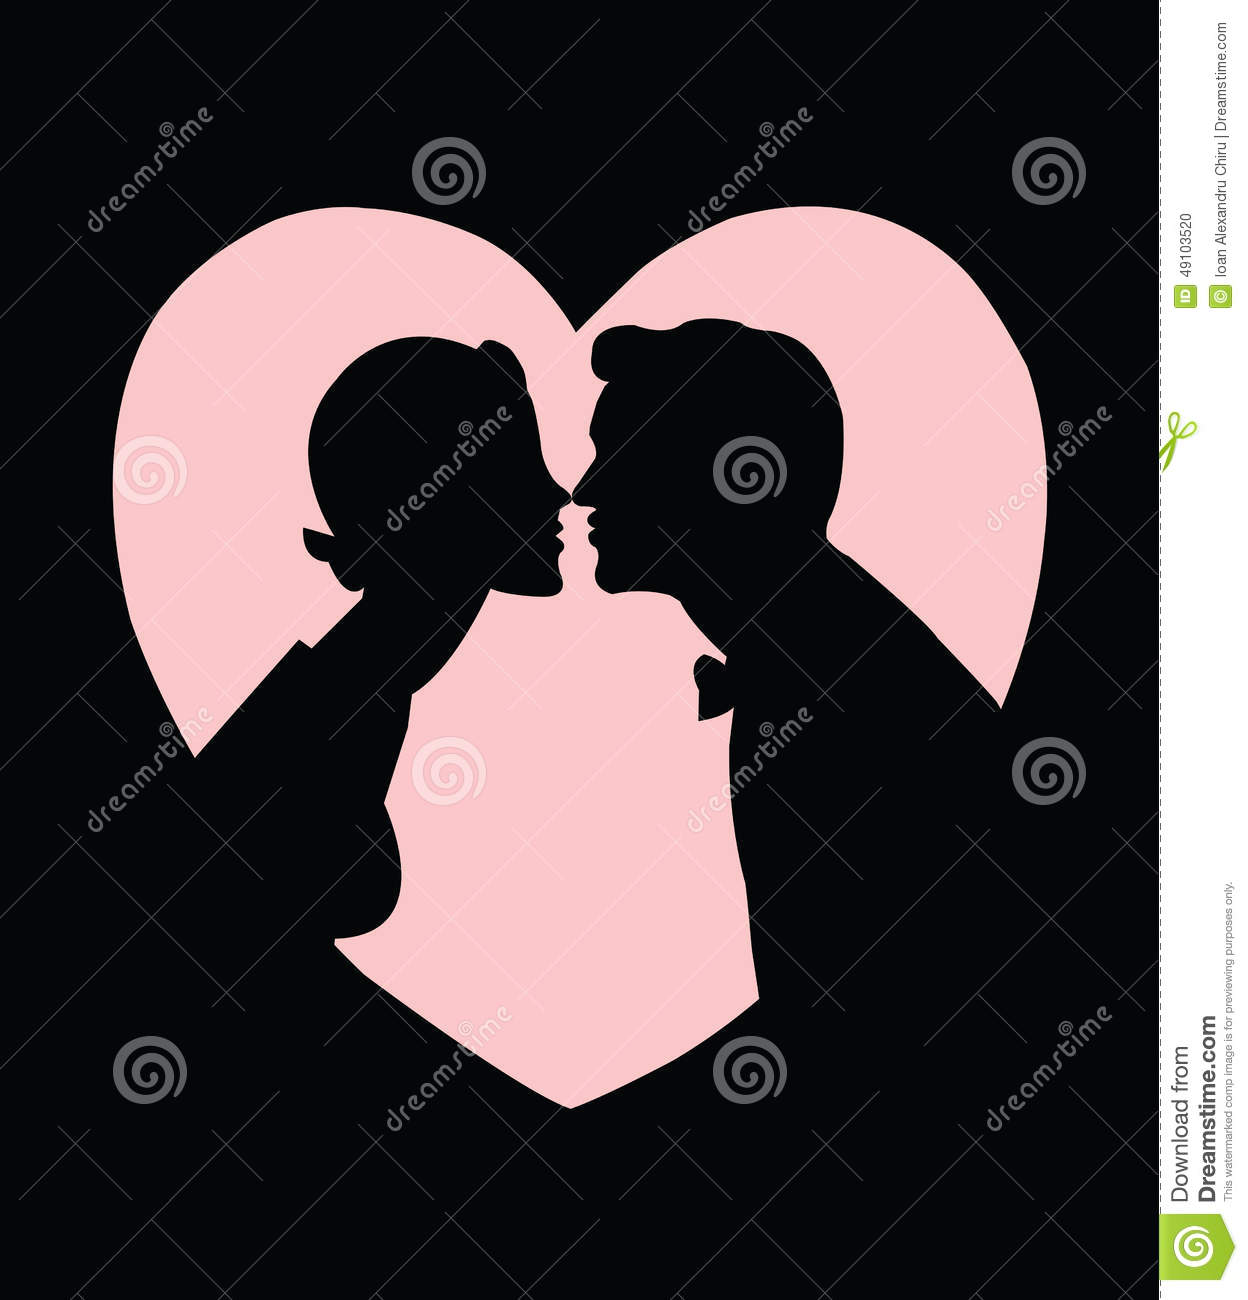 Lovers silhouette kissing